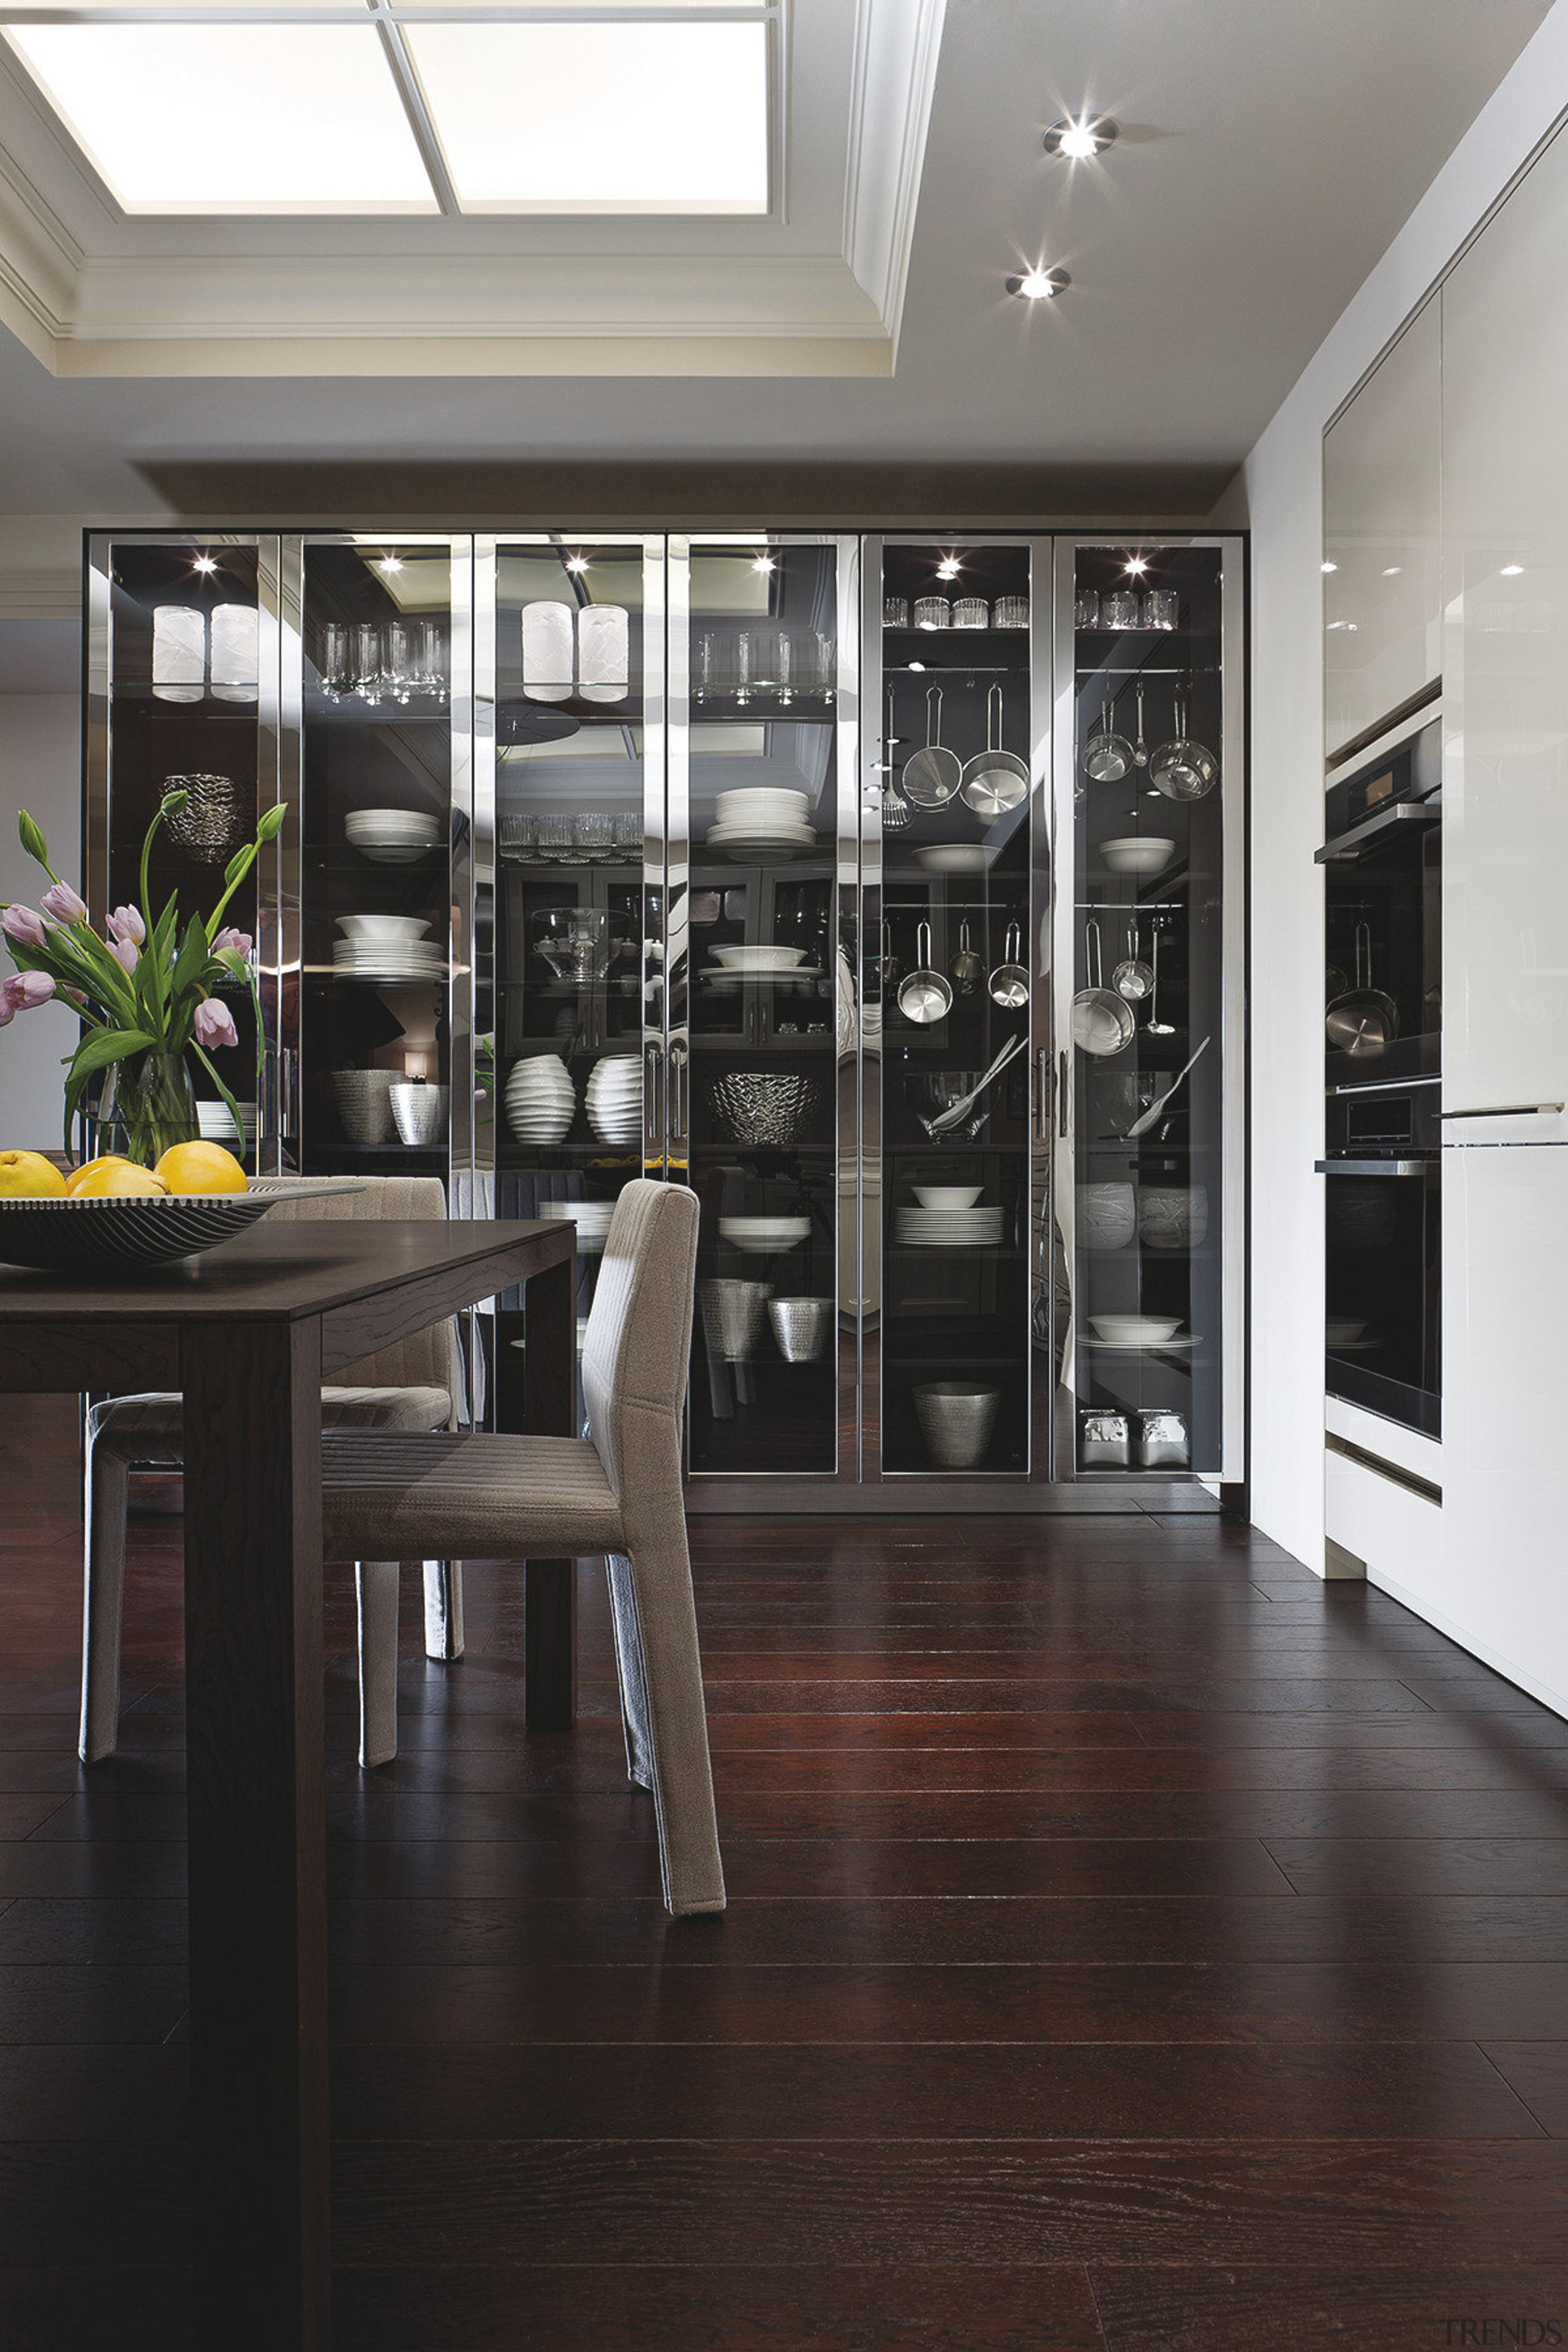 View of the BeauxArts.02 collection by SieMatic, including floor, flooring, hardwood, interior design, laminate flooring, lobby, window, wood, wood flooring, black